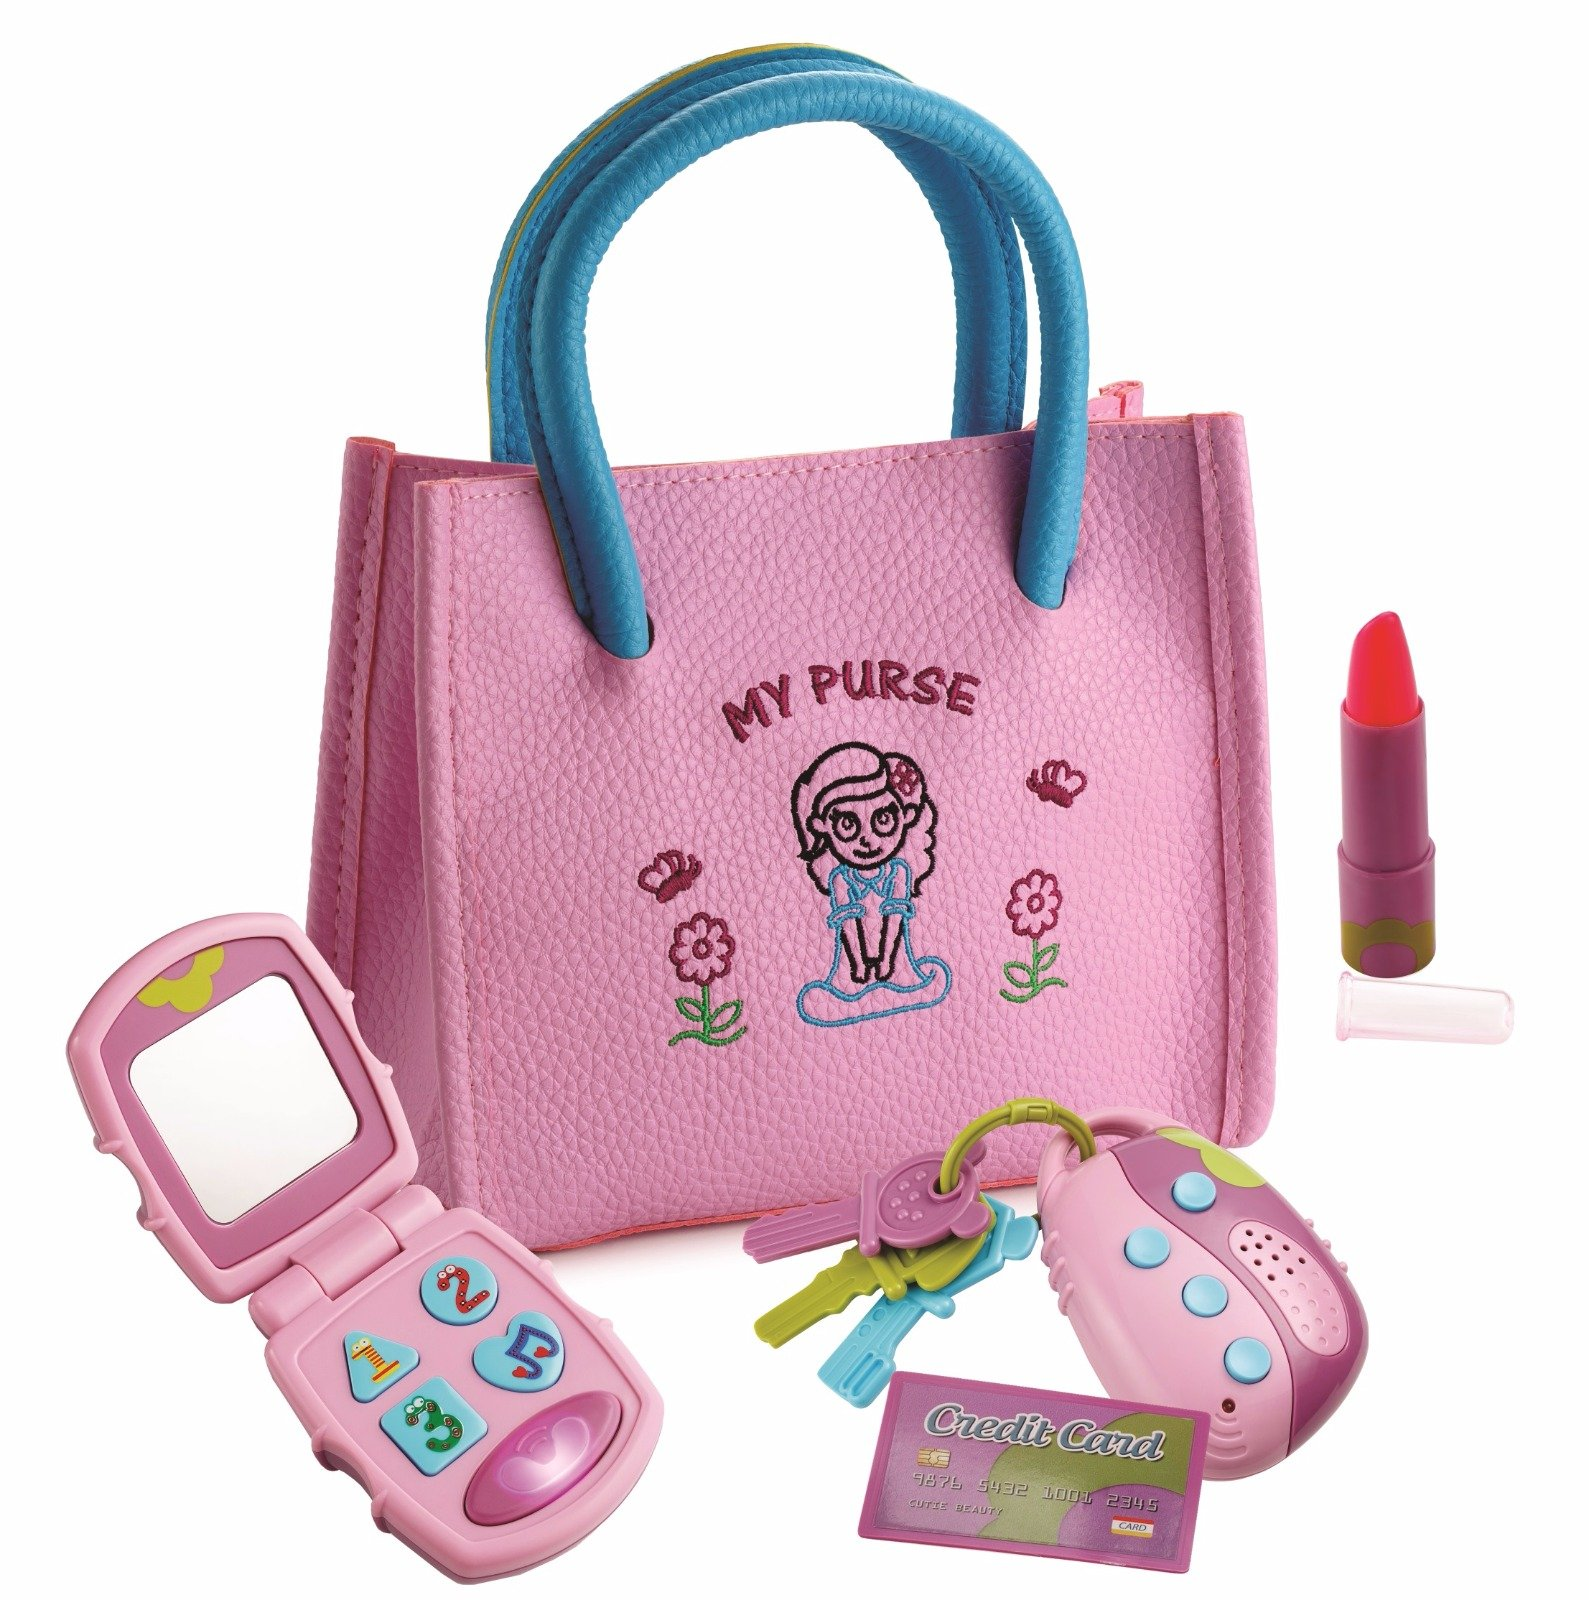 Dress Up America Little Girl's My First Purse – Pretend Play Kid Purse Set for Girls Accessory, Multi Color, One Size